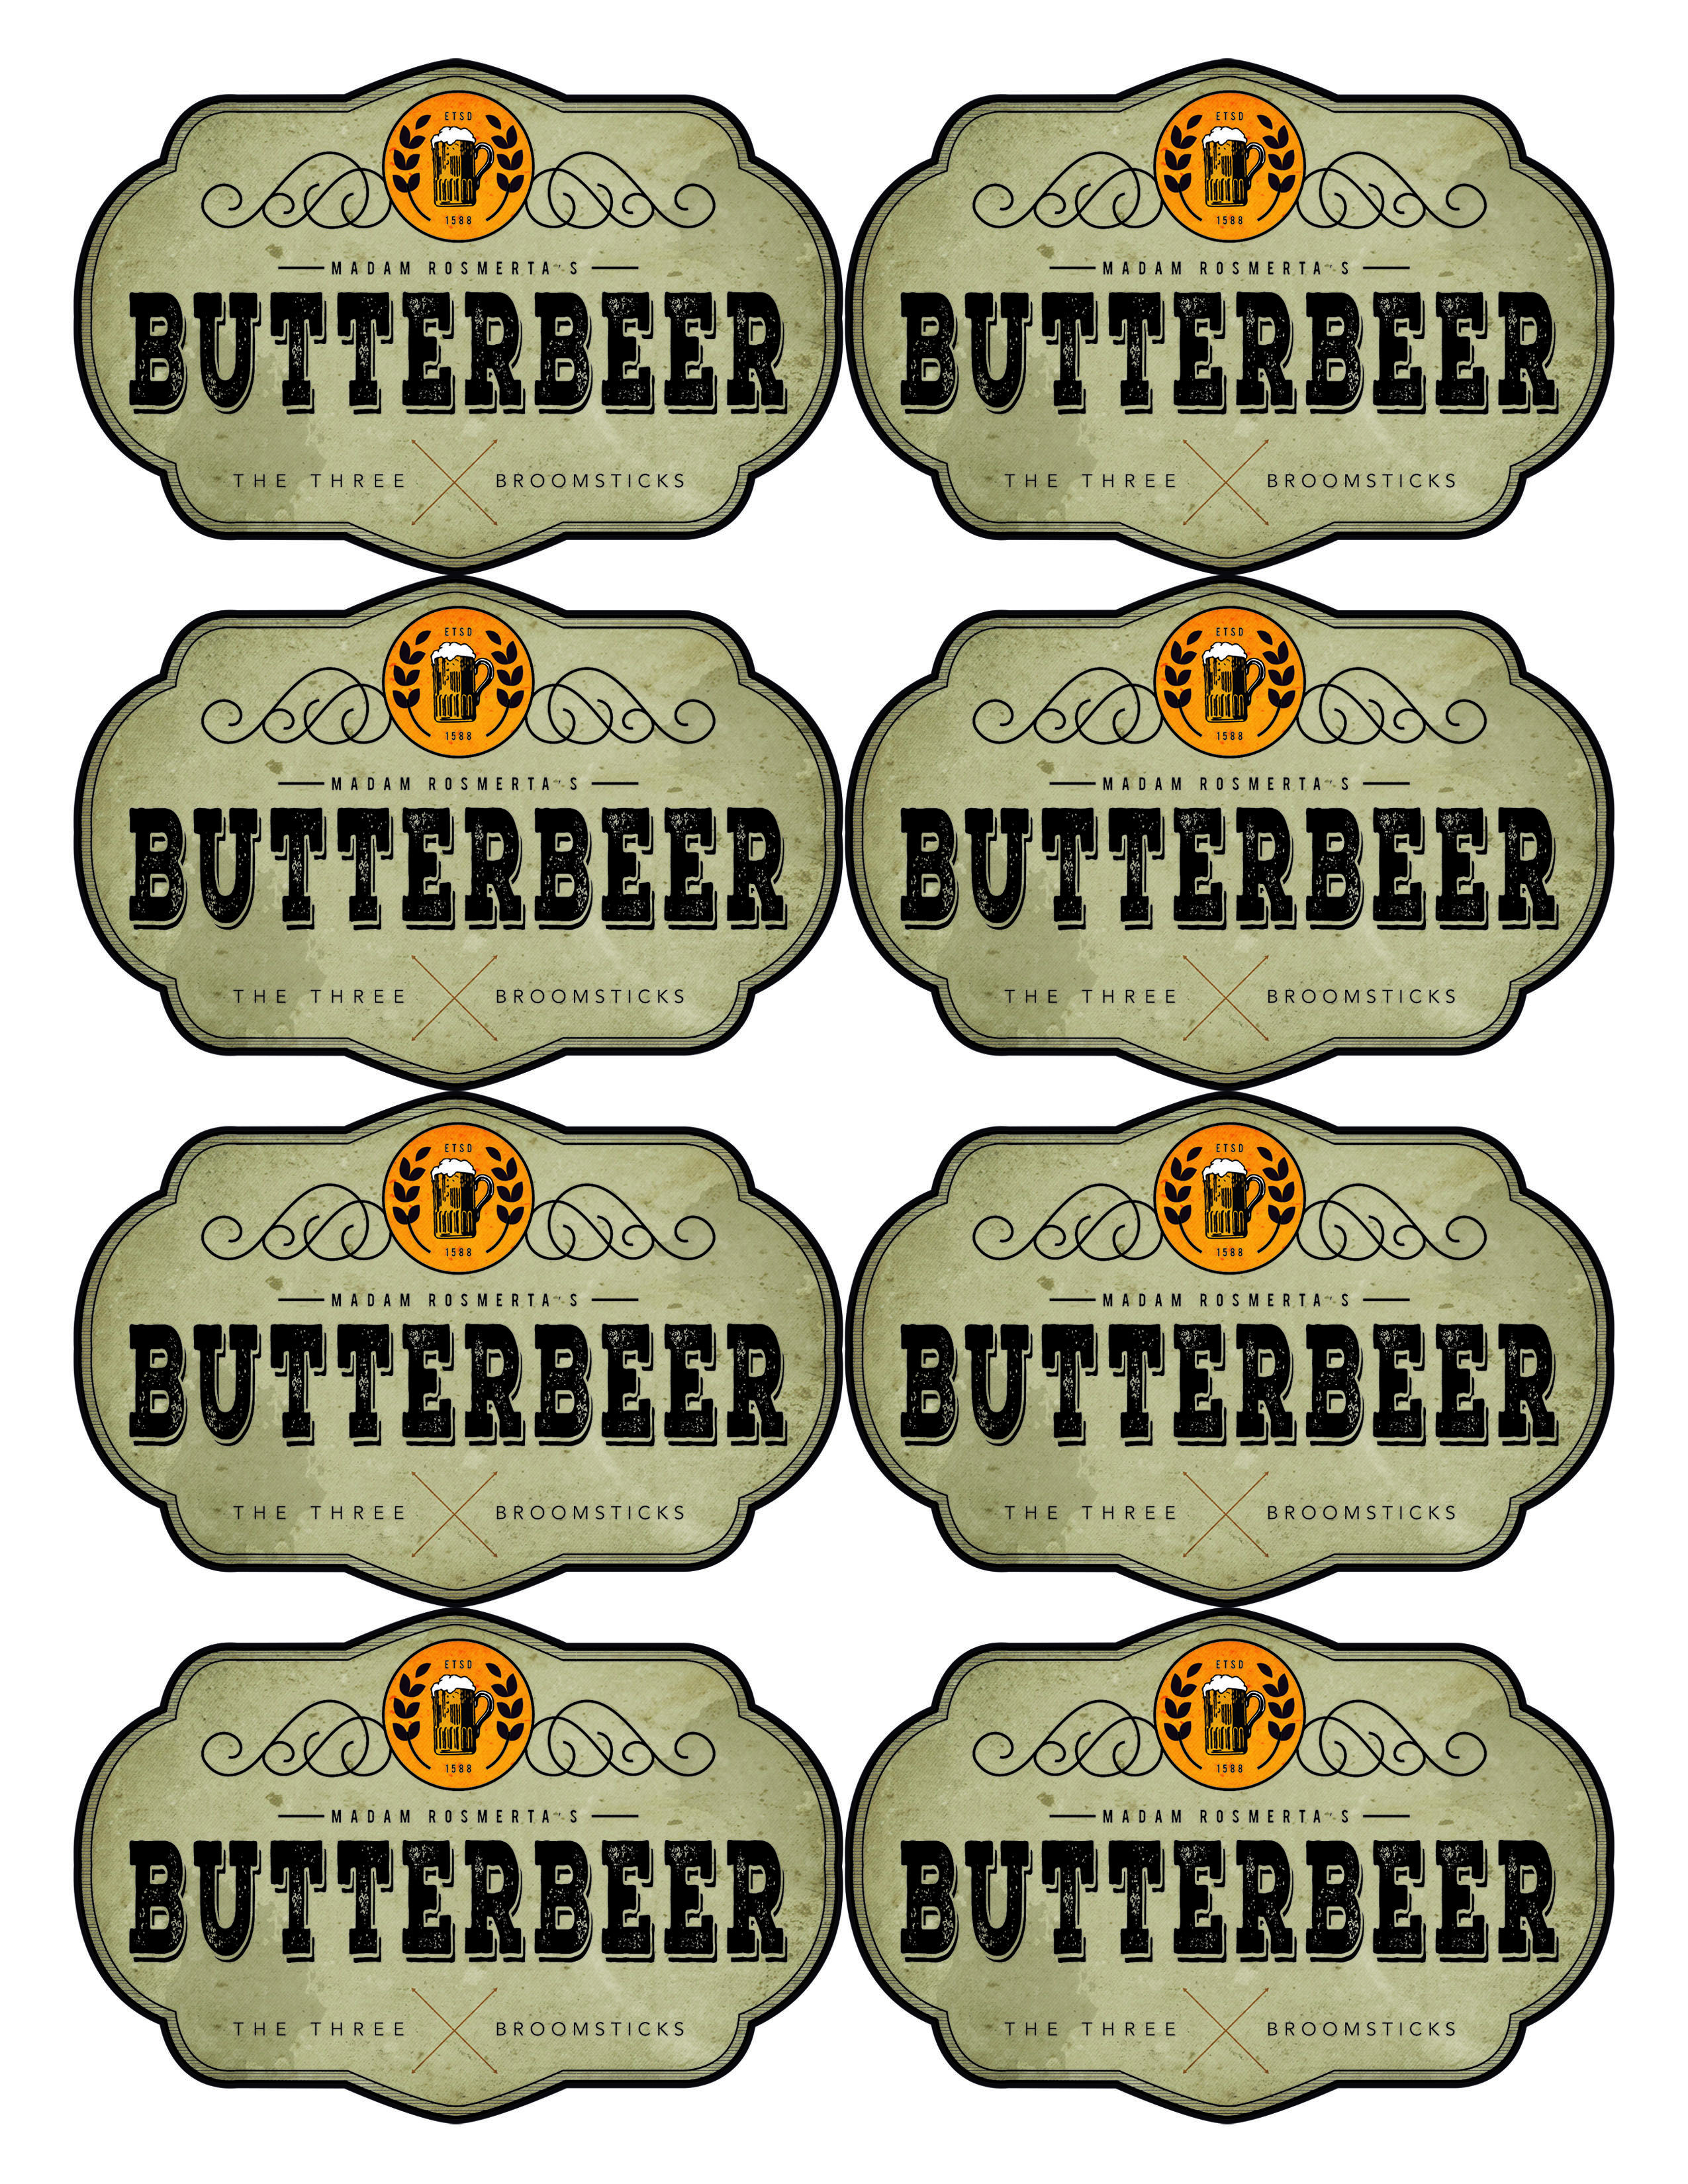 Pinkelly Toy Shoop On Harry Potter In 2019 | Harry Potter Bday - Free Printable Butterbeer Labels